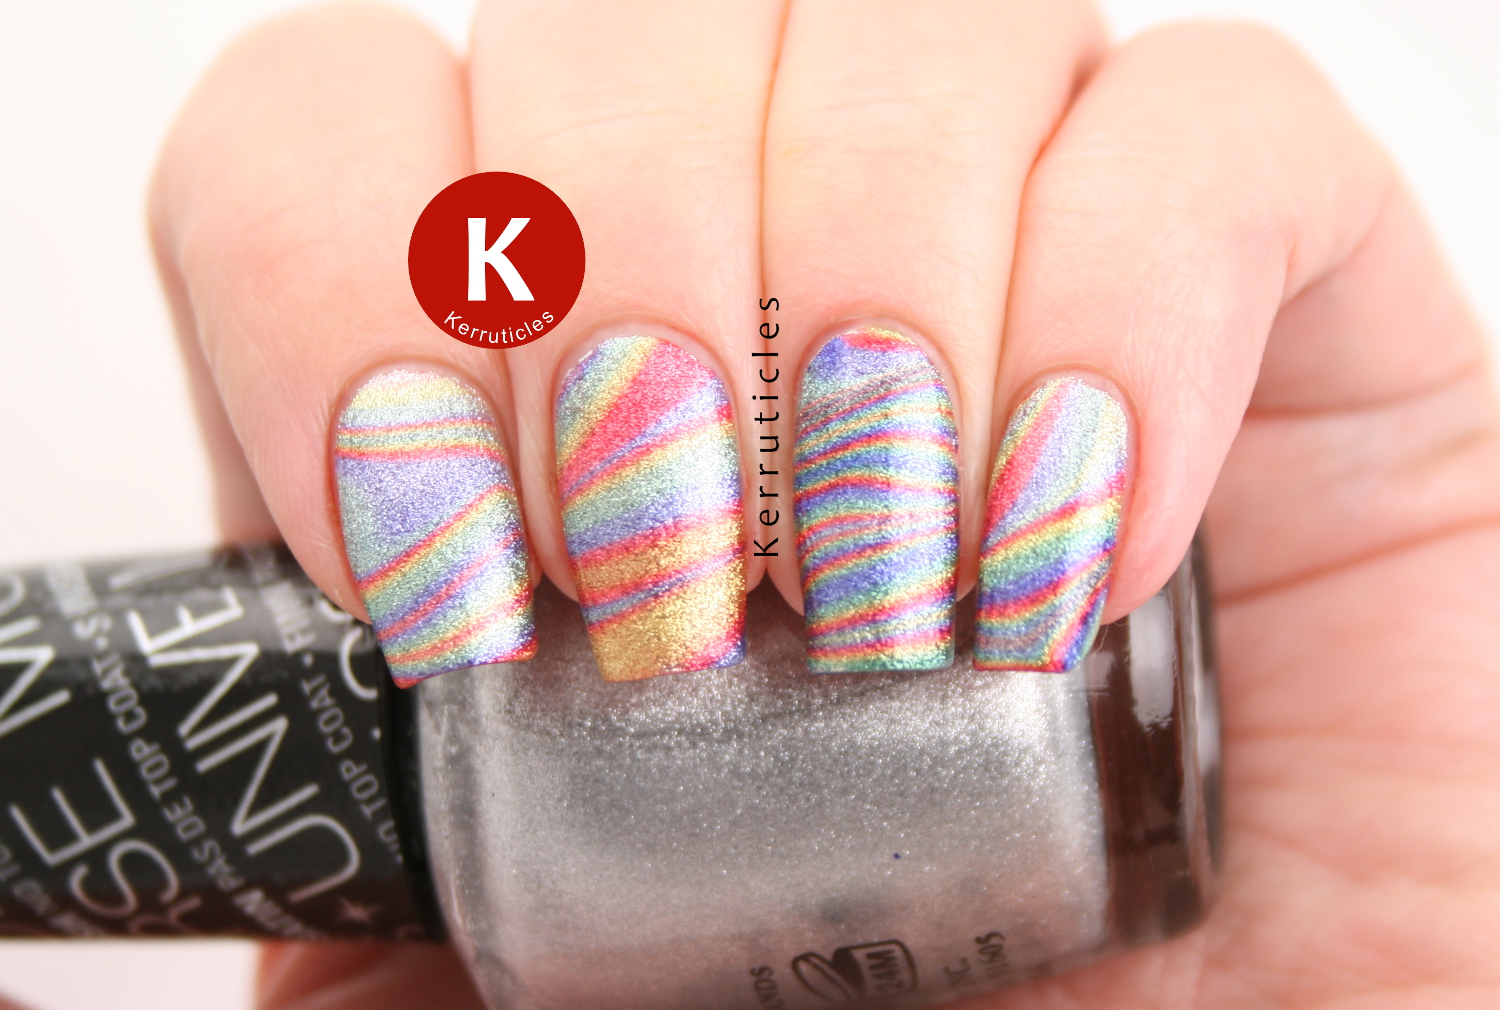 Rainbow water marble using W7 Jelly Bean polishes